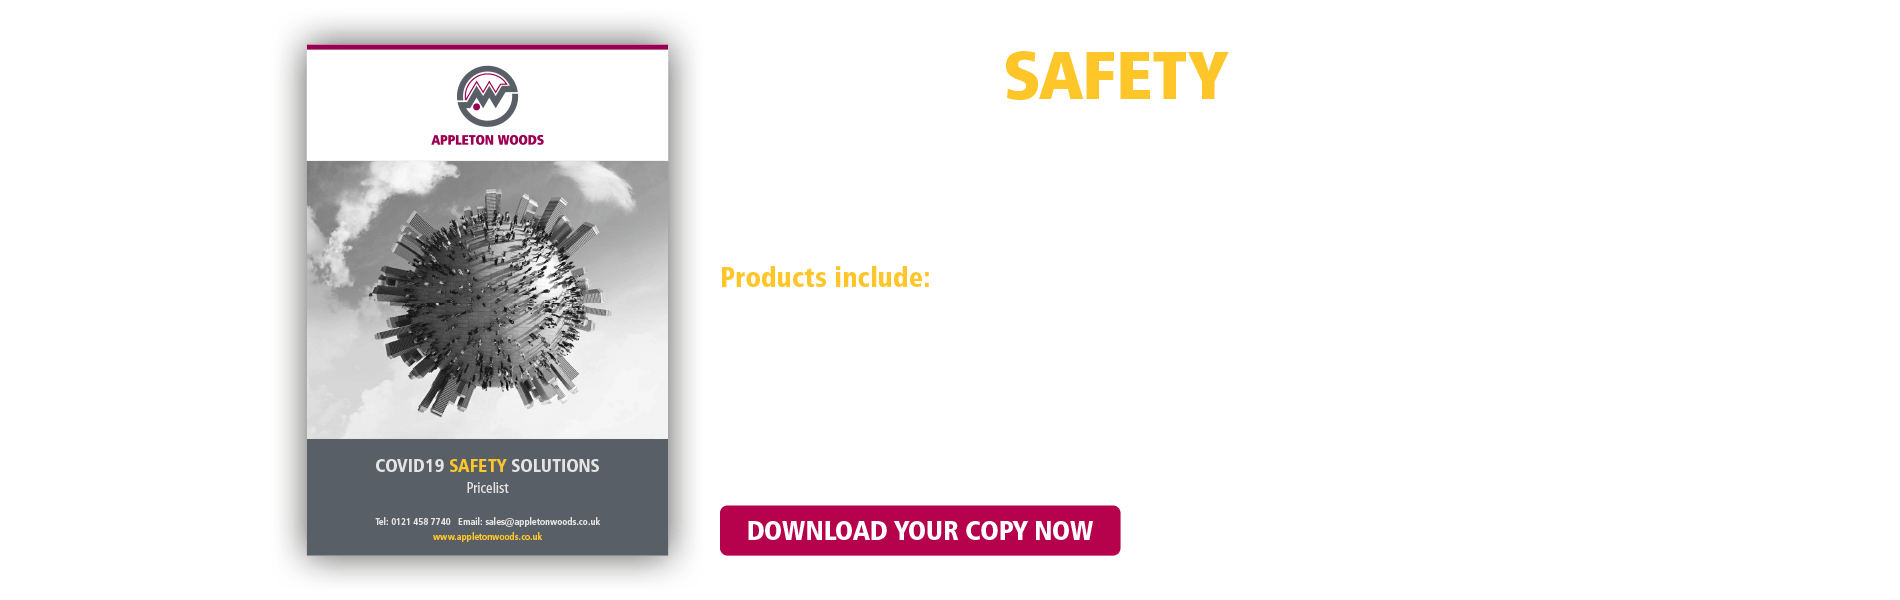 Covid-19 Safety Solutions